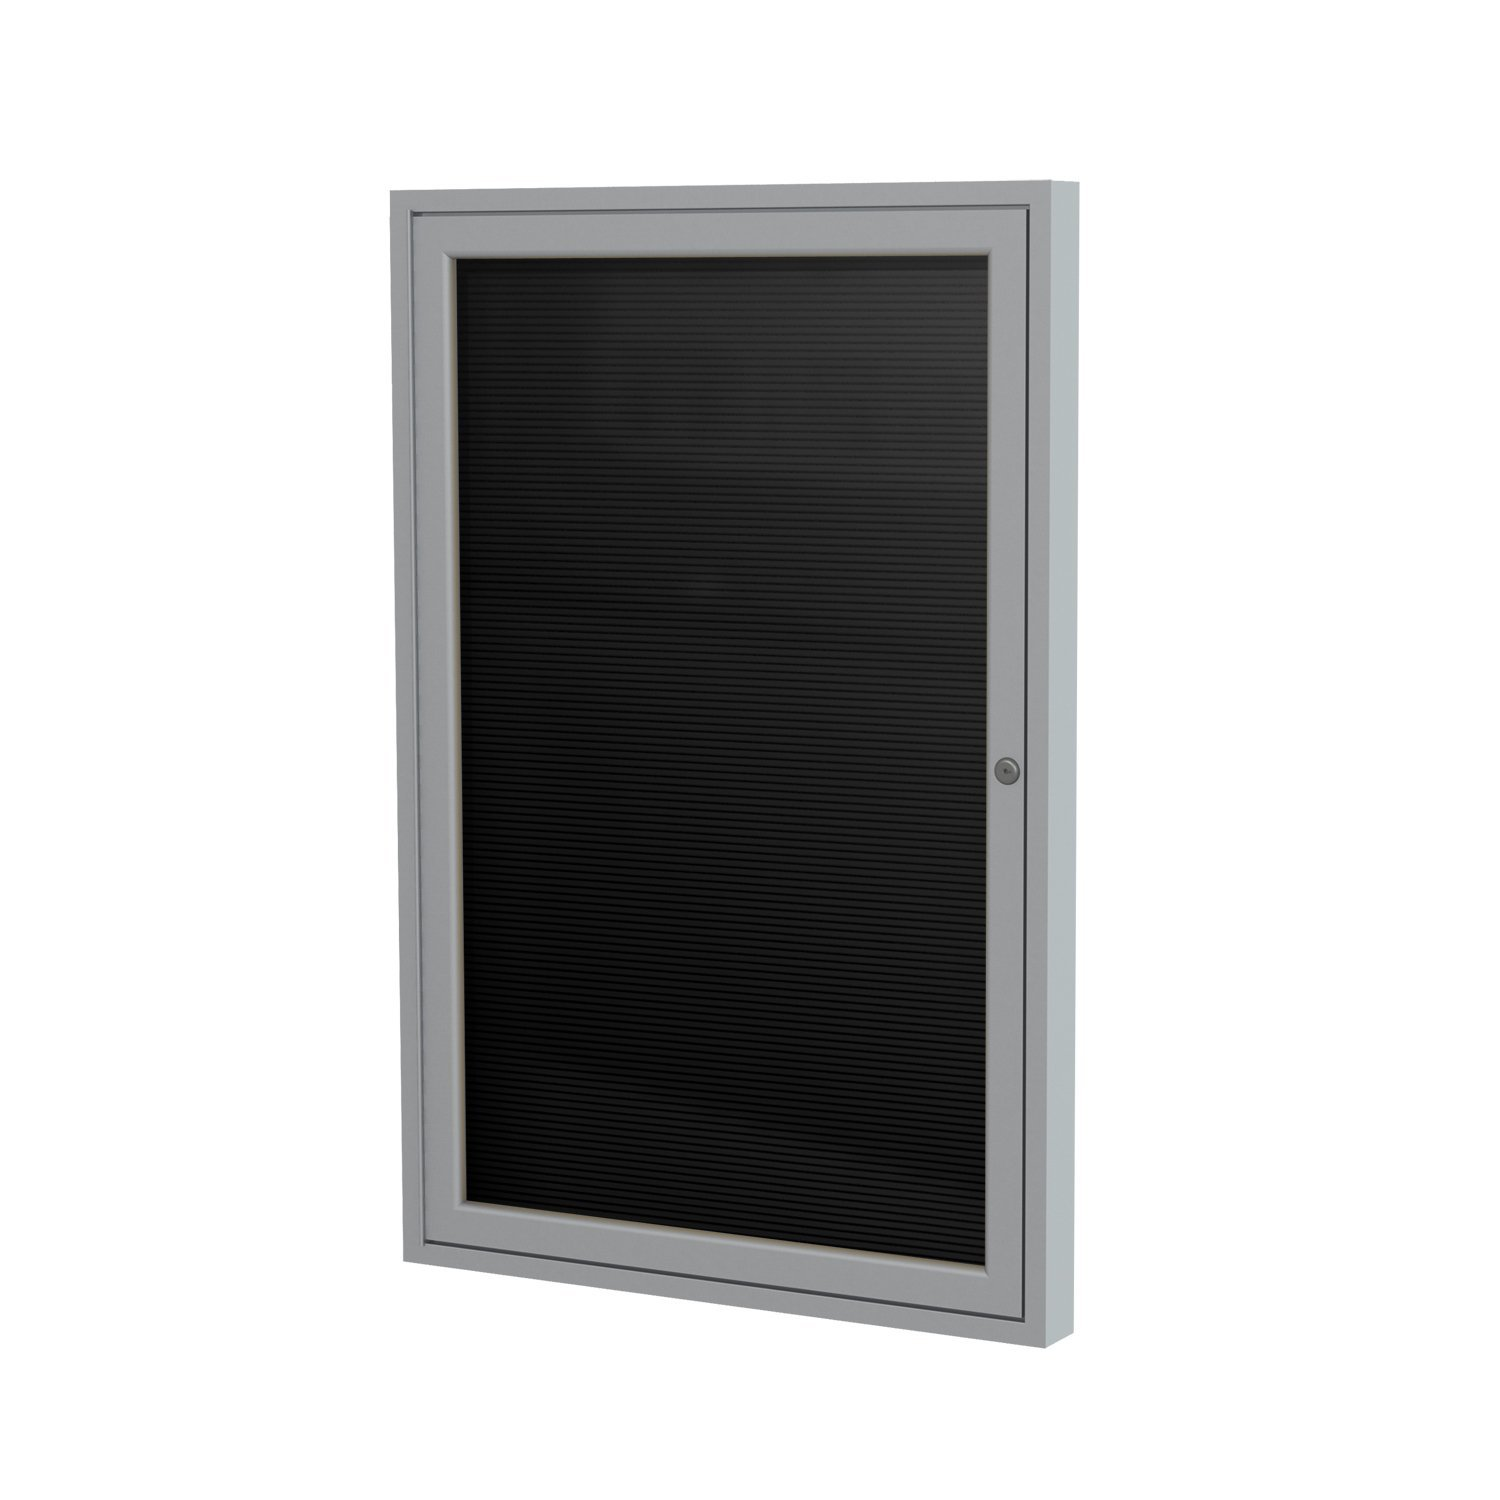 Ghent 24'' x 18'' 1 Door  Outdoor Enclosed Vinyl Letter Board, Black Letter Panel, Satin Aluminum Frame (PA12418BX-BK) by Ghent